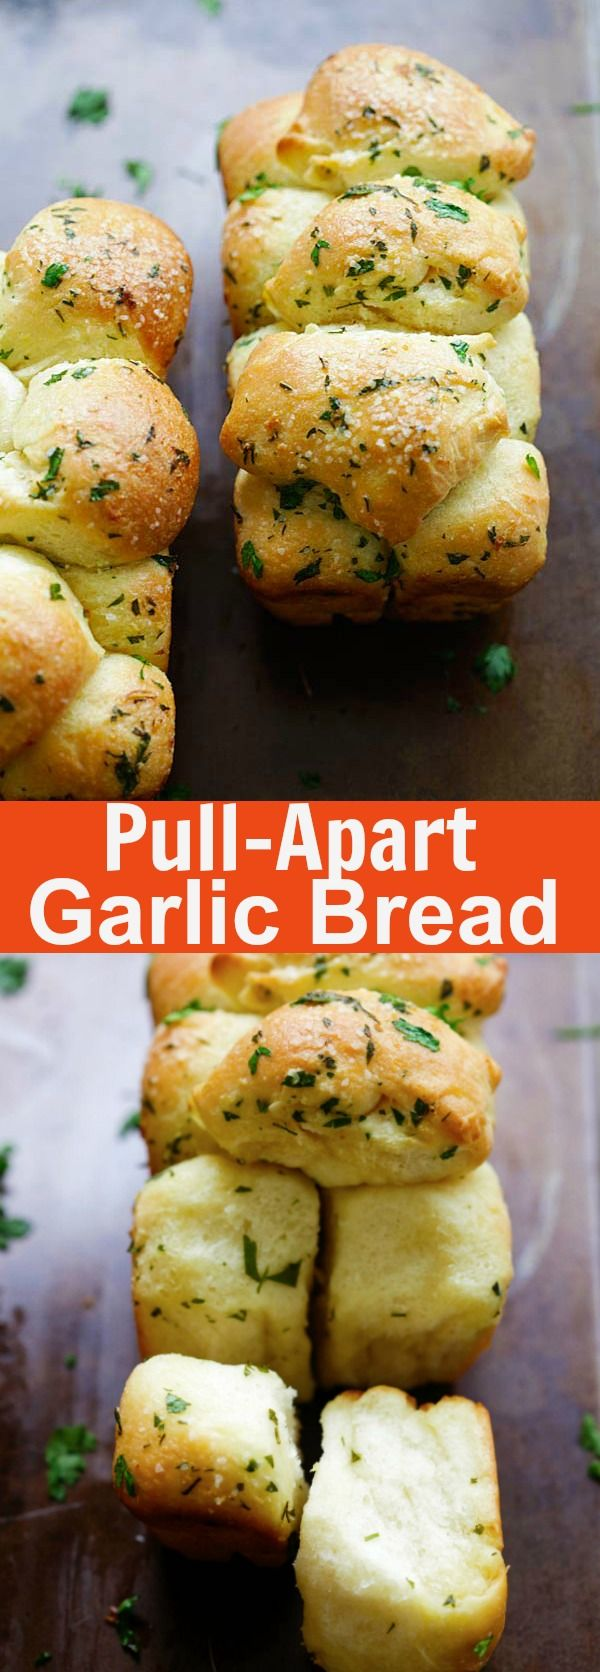 Pull Apart Garlic Bread - homemade pull apart garlic bread recipe that is easy, fool proof and yields the softest and best garlic bread ever | rasamalaysia.com